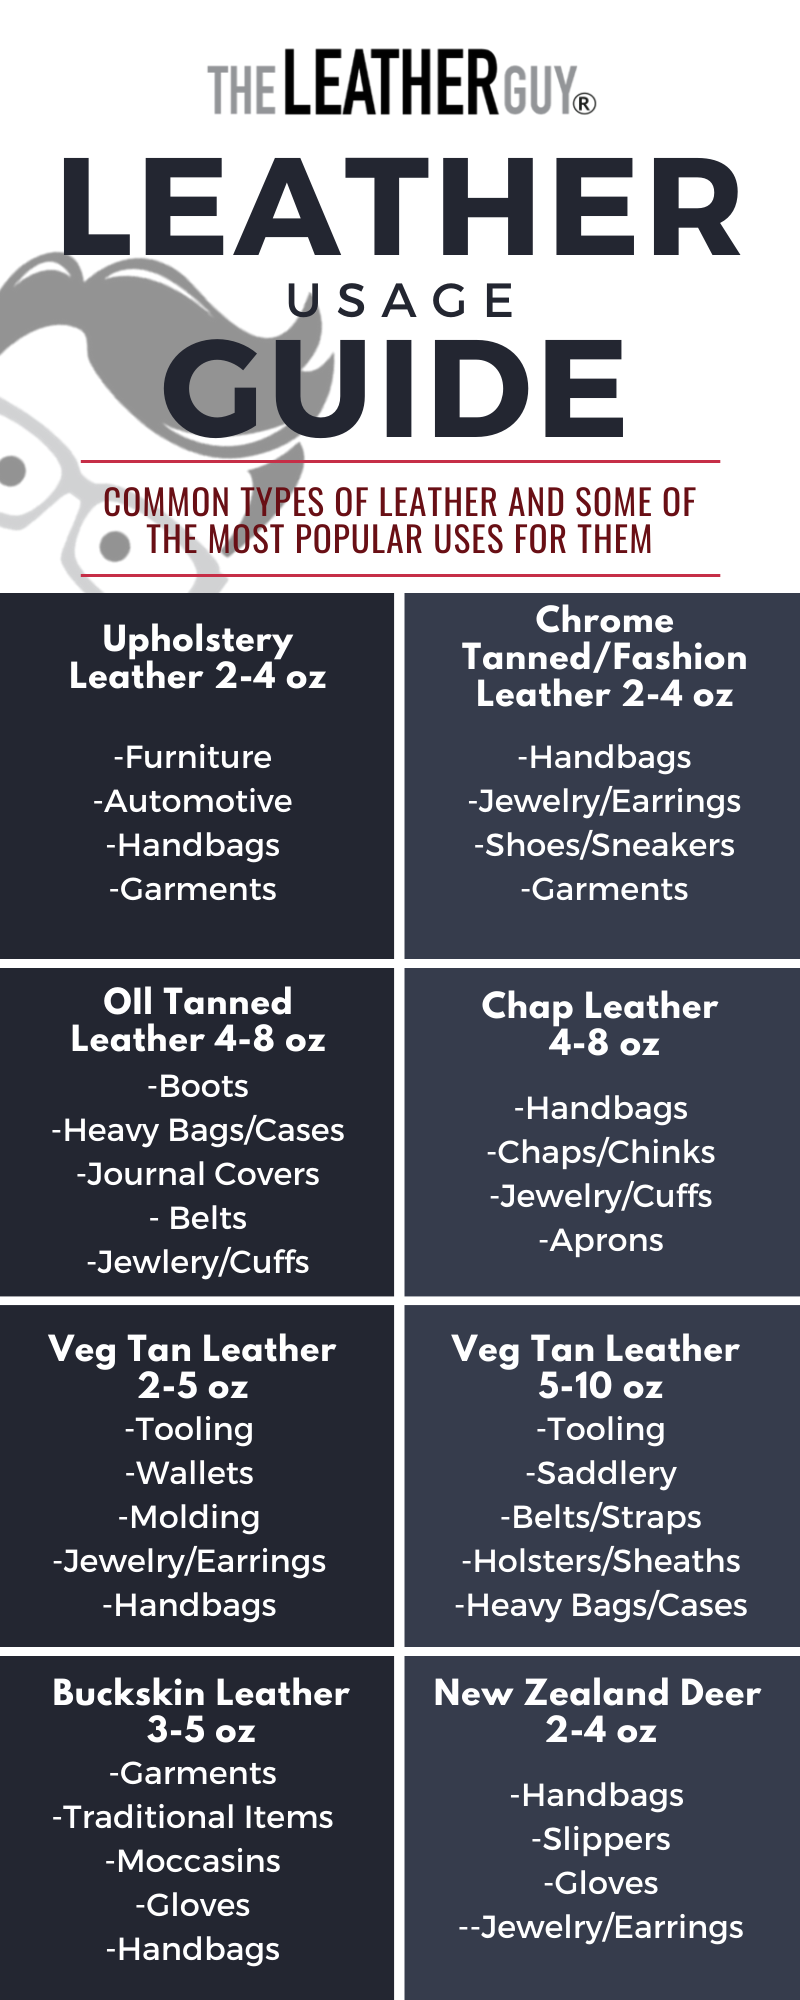 Here's a quick overview of some of the most common uses for some of our more popular leathers. Use this as jumping off point when trying to decide what leather to use for your project!  #leathercraft #diyleather #howtoleather #leathergoods #leatherearrings #leatherjewelry #customkicks